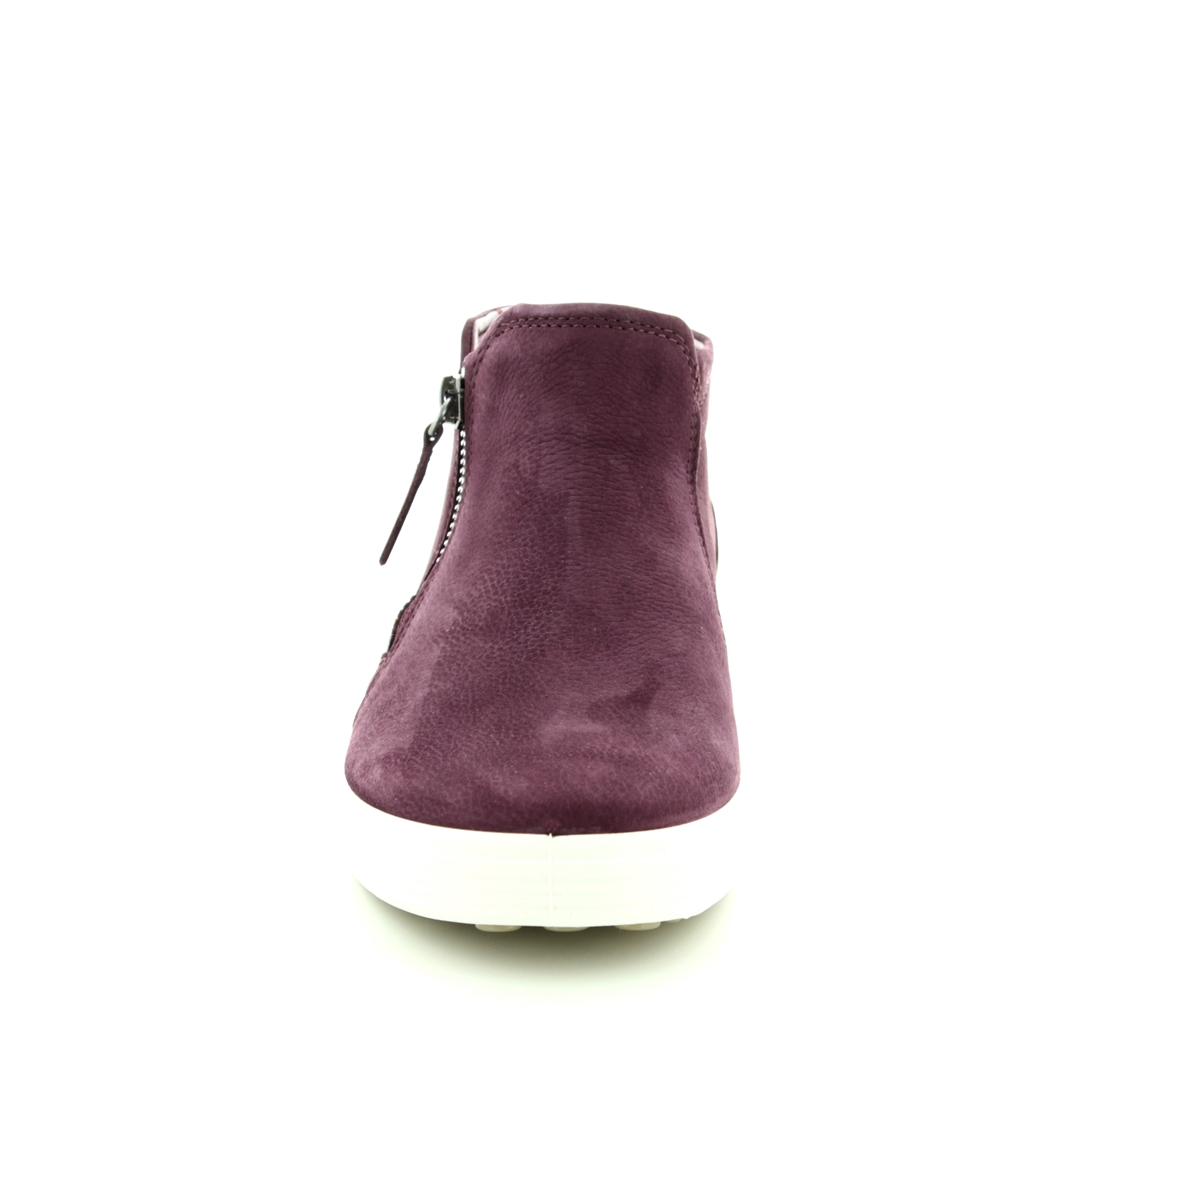 c91414302b6f9 ECCO Ankle Boots - Wine - 430243/01070 SOFT 7 LADIES BOOT